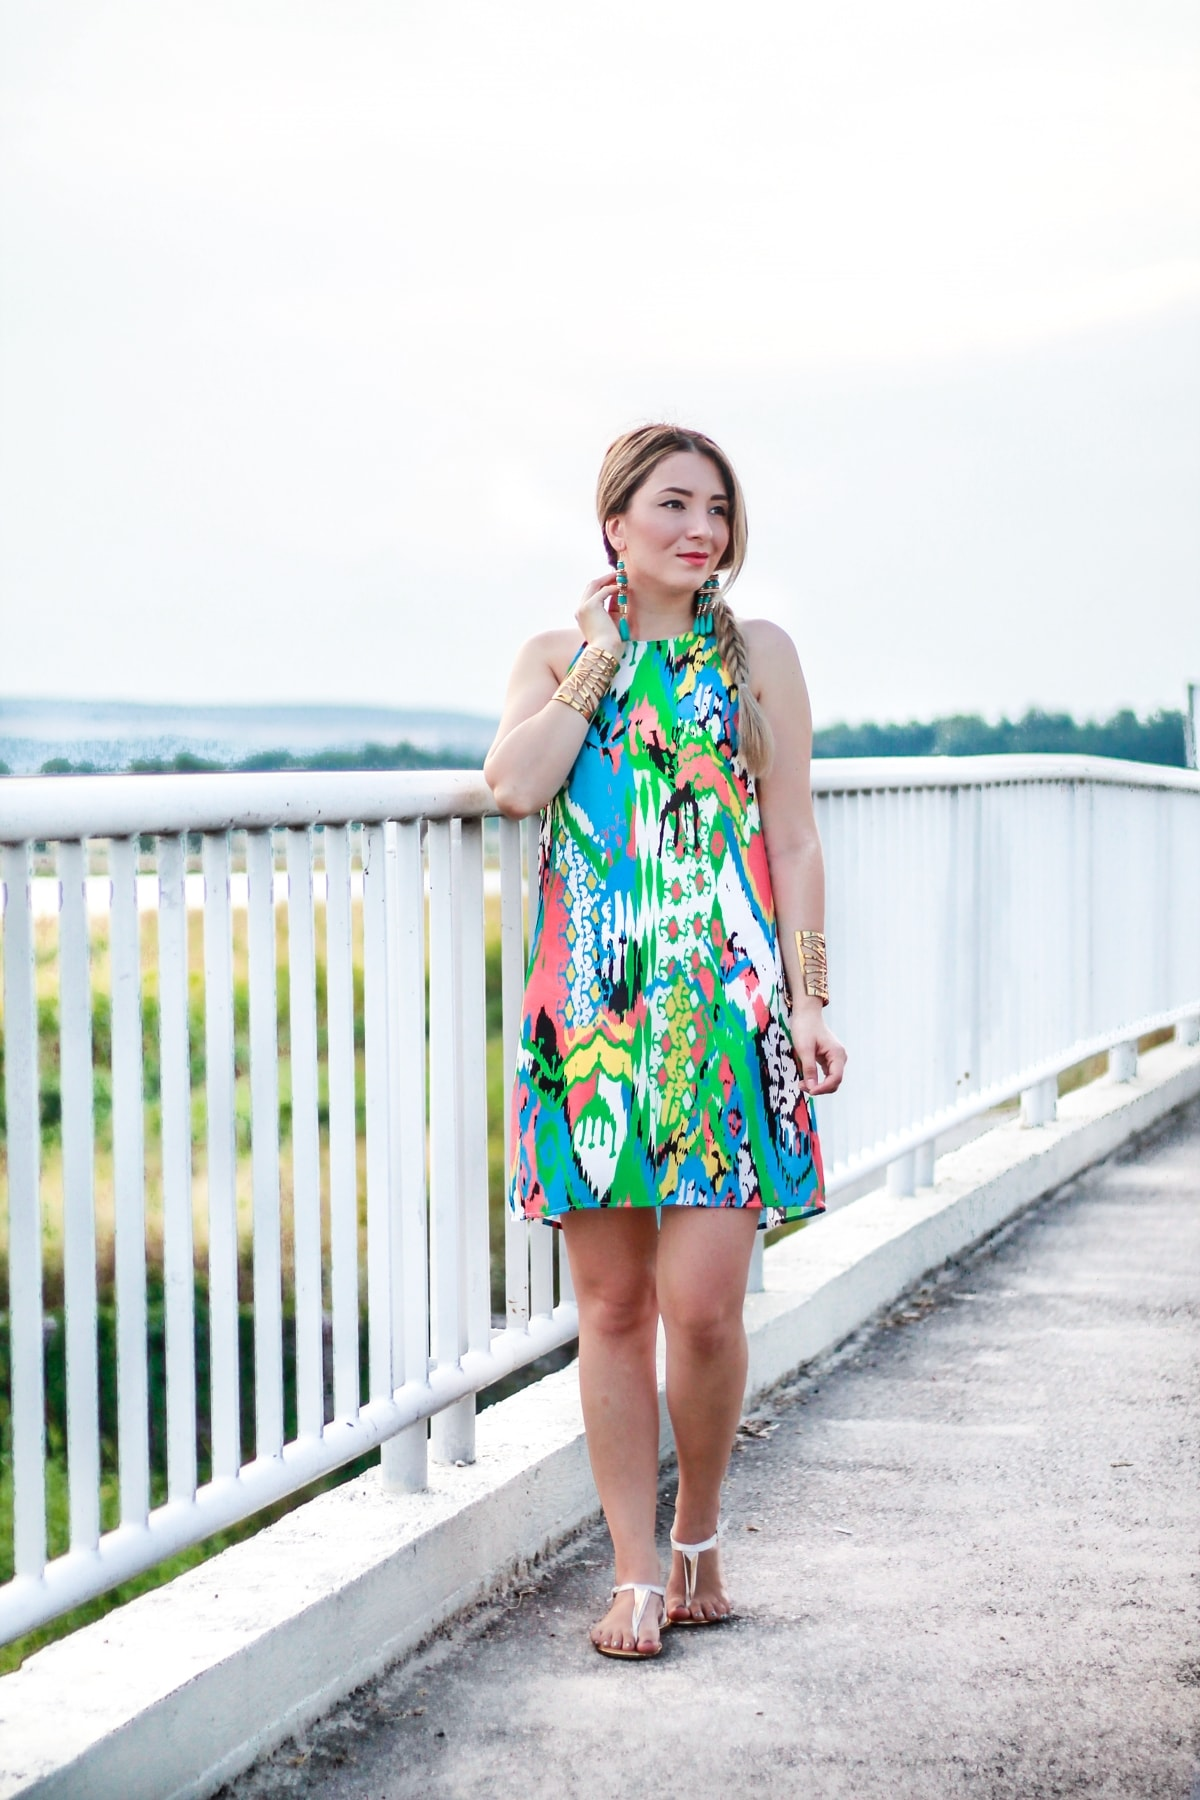 Street style: shein multicolor dress, summer look